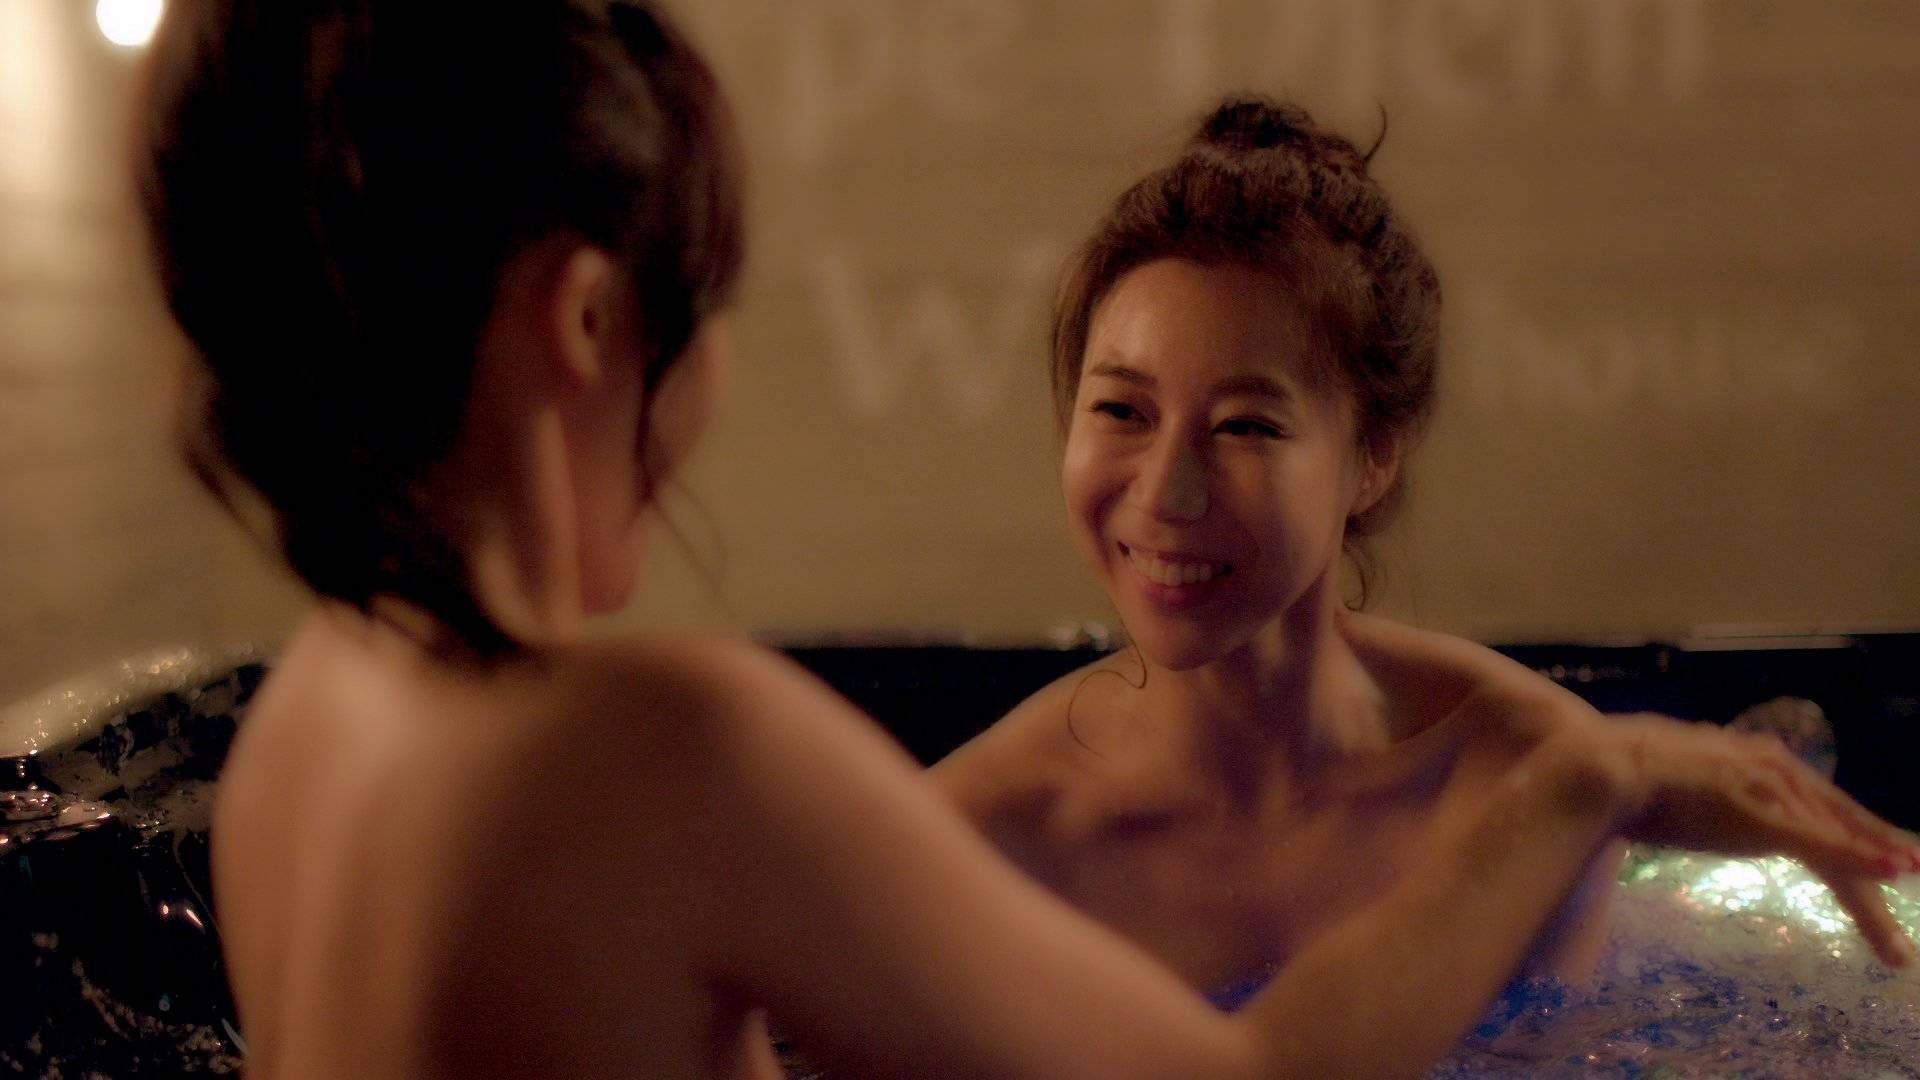 from River nude film youtube korean